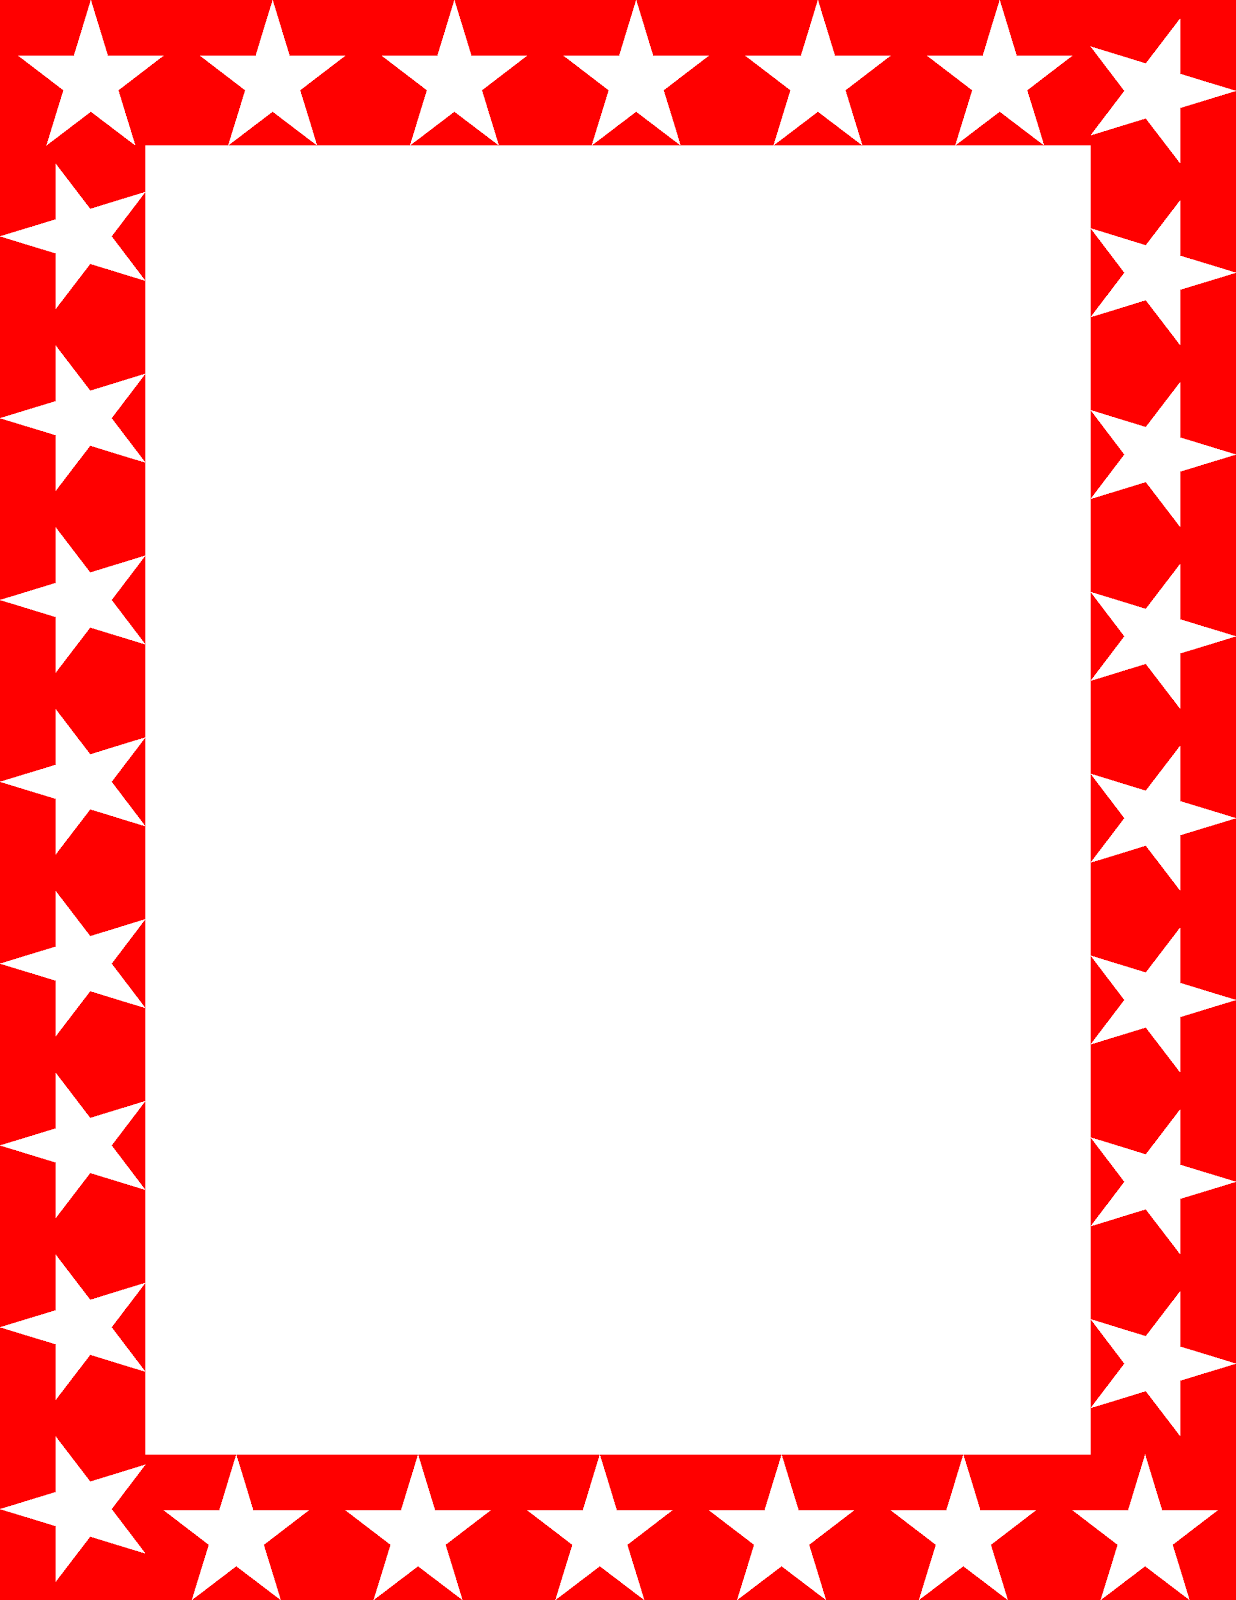 Red Frame Clipart | Free download best Red Frame Clipart on ...